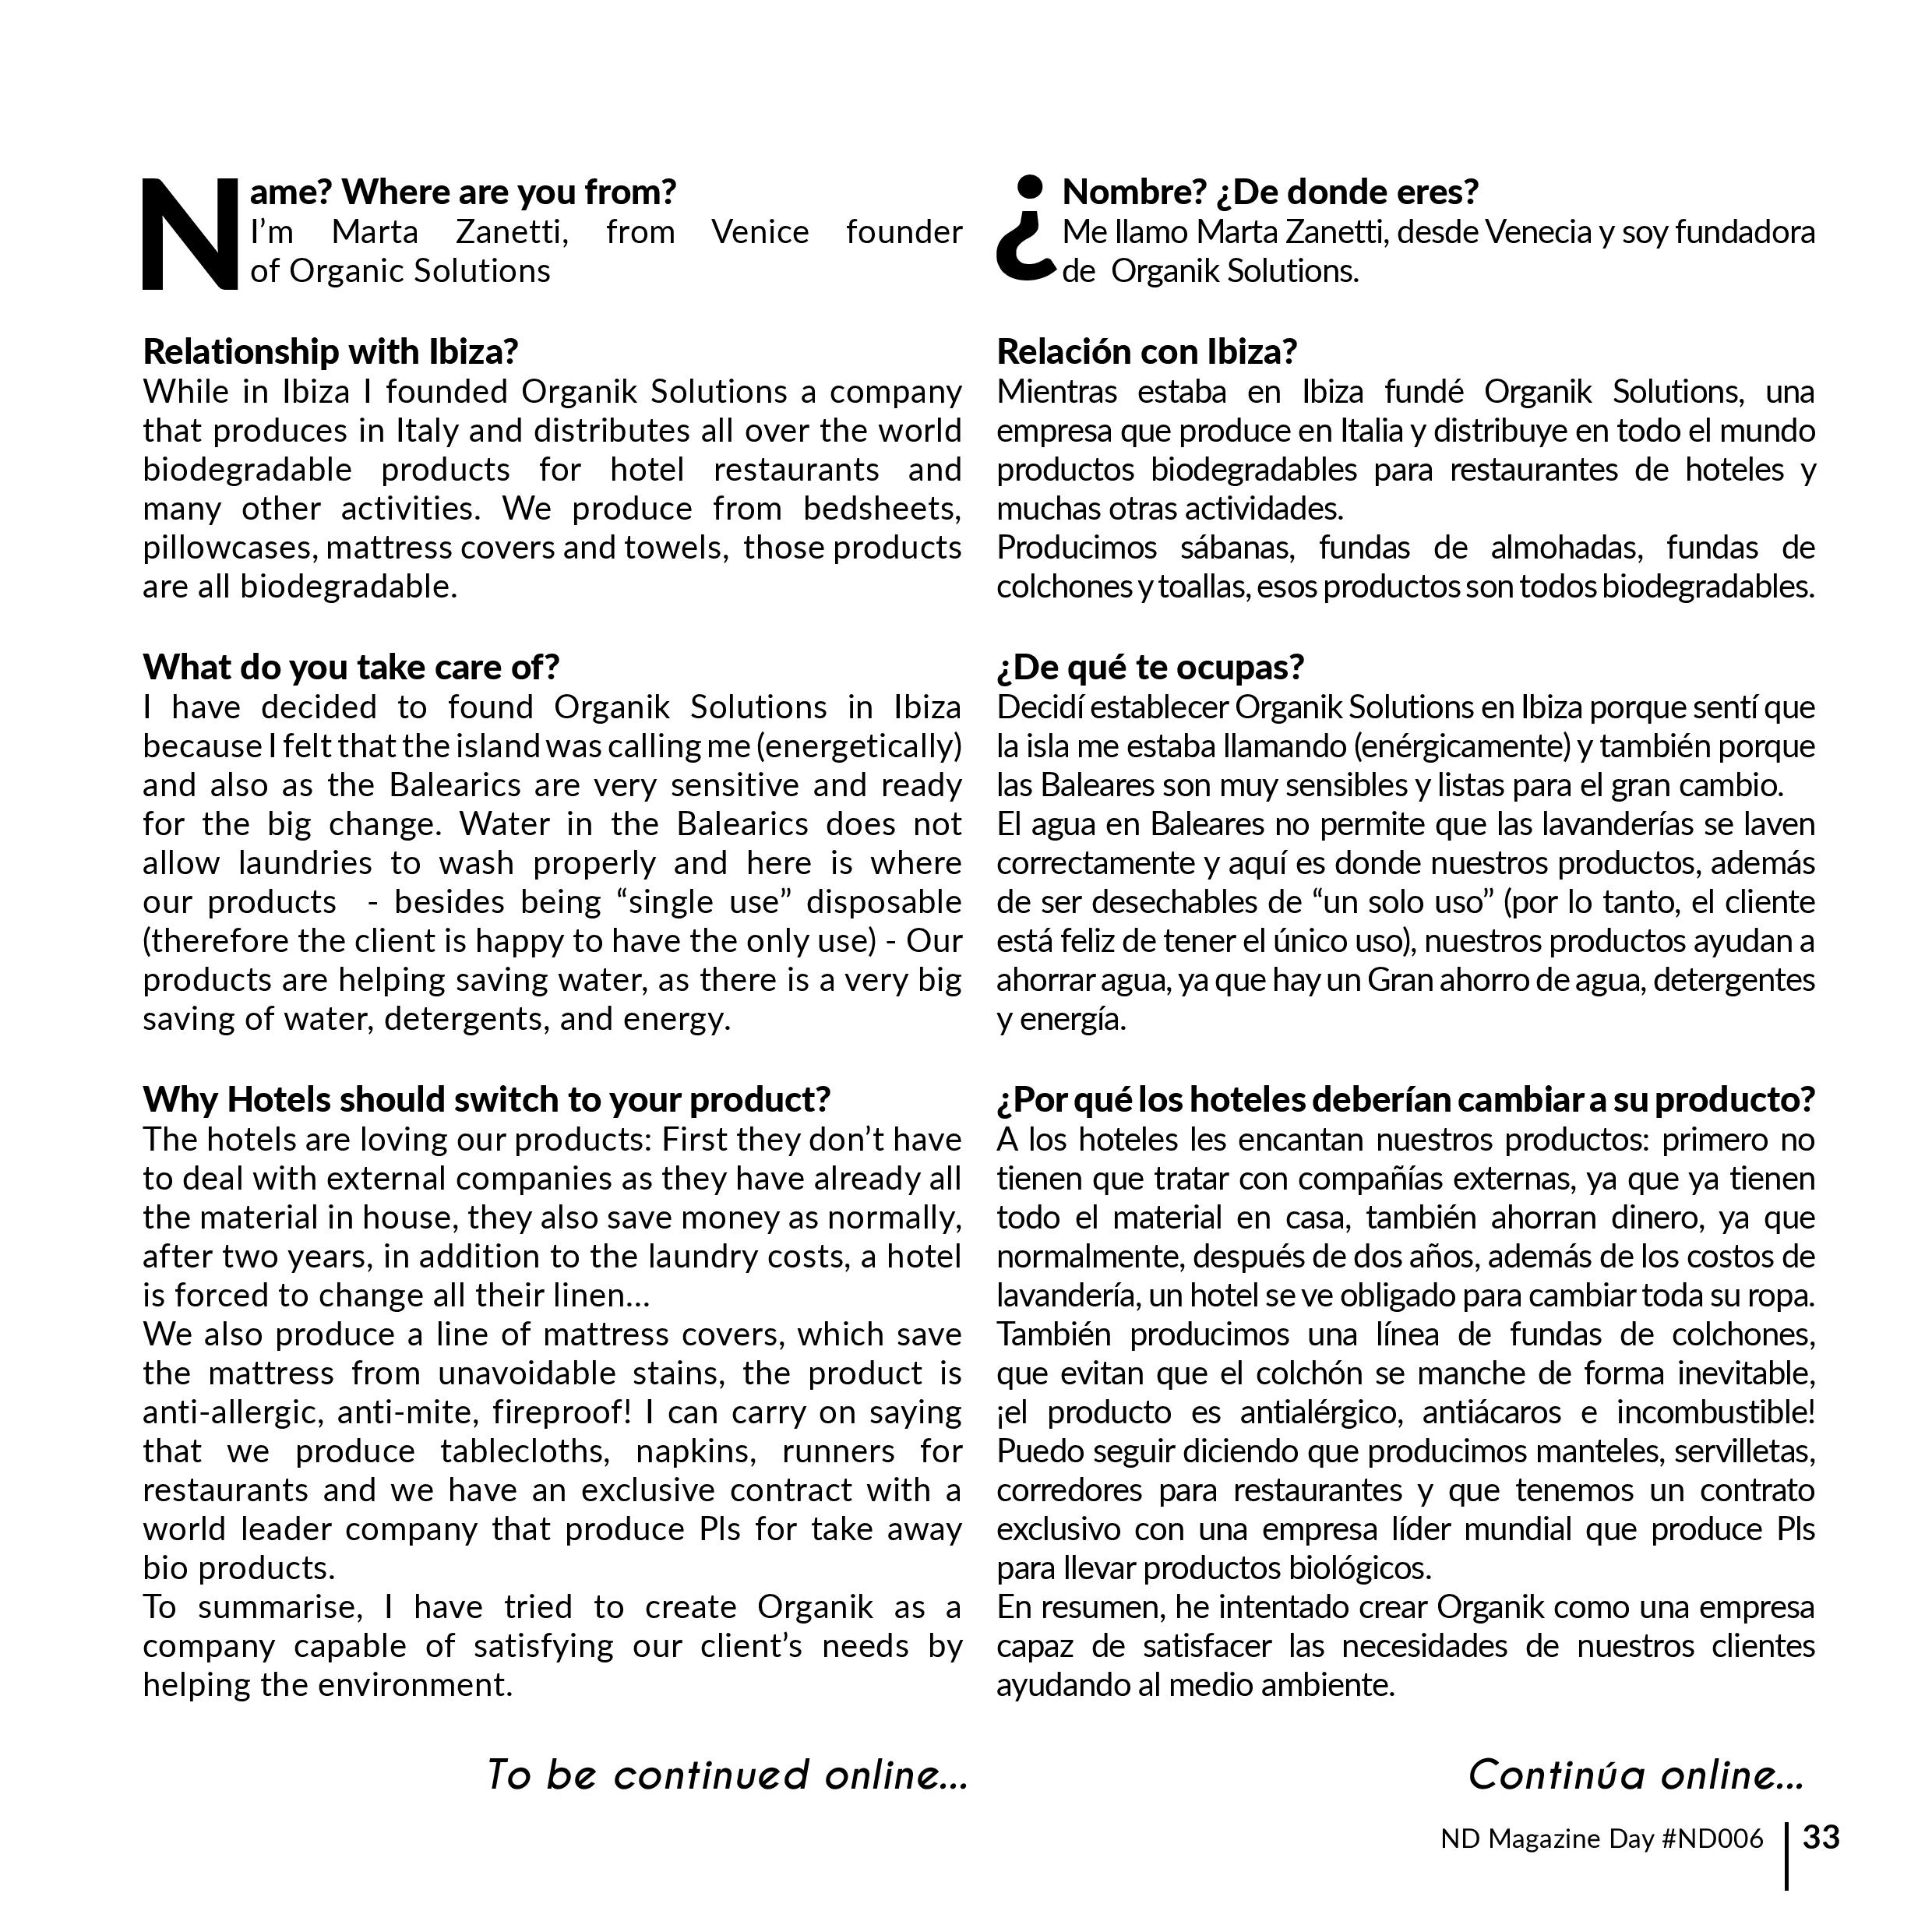 nd006day-page-033.jpg